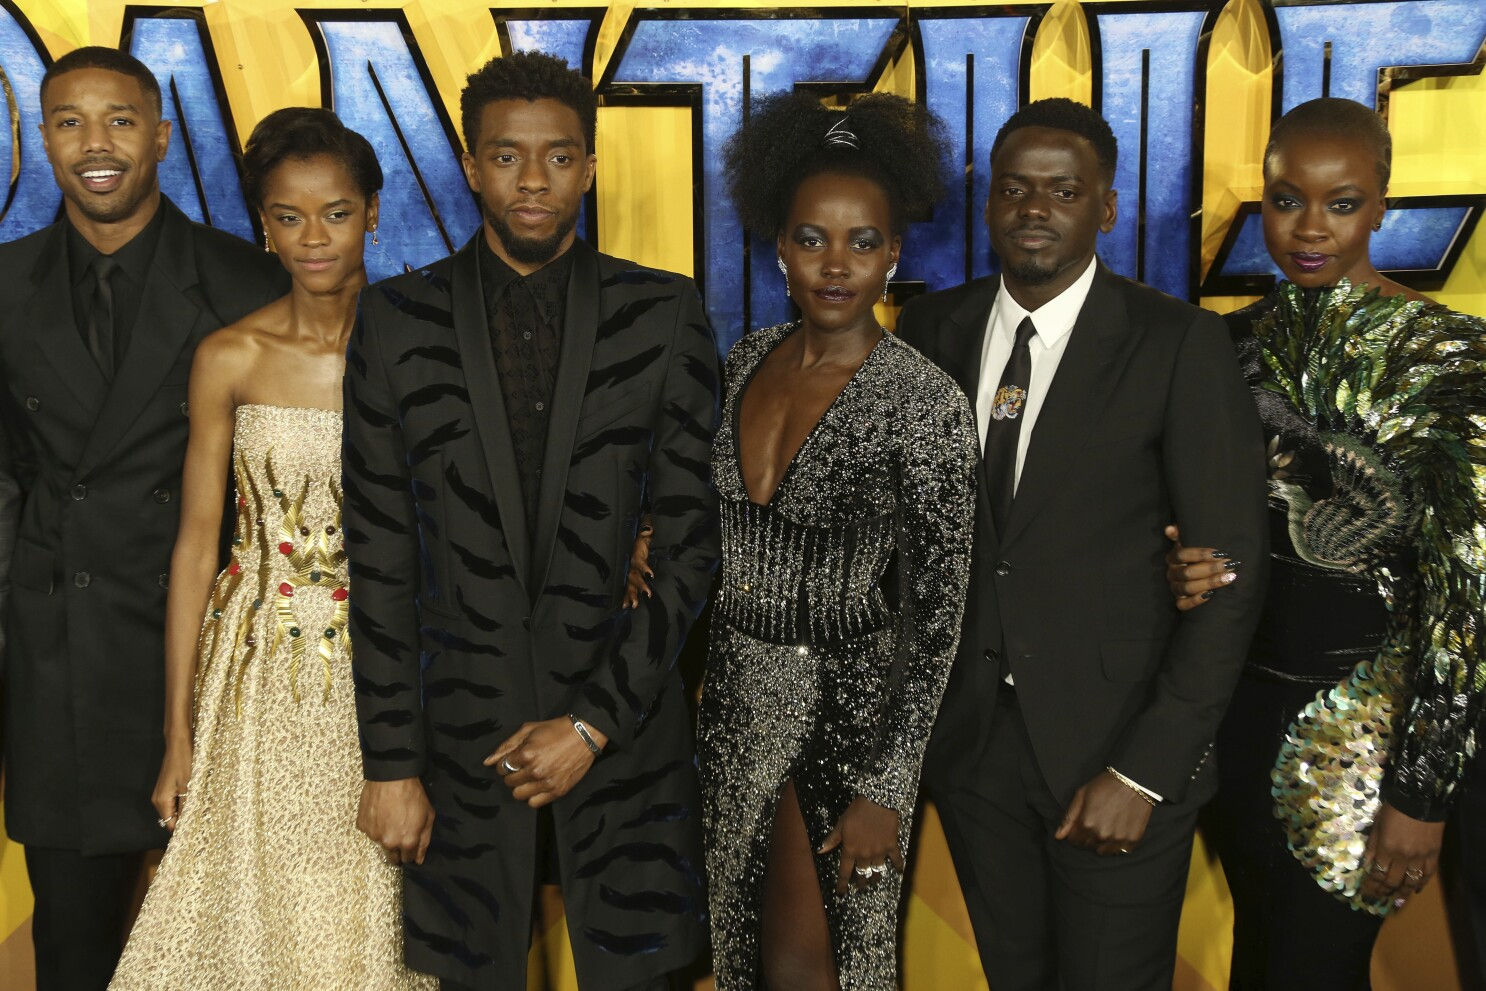 Chadwick Boseman death: Celebrities share grief, memories - Los Angeles Times